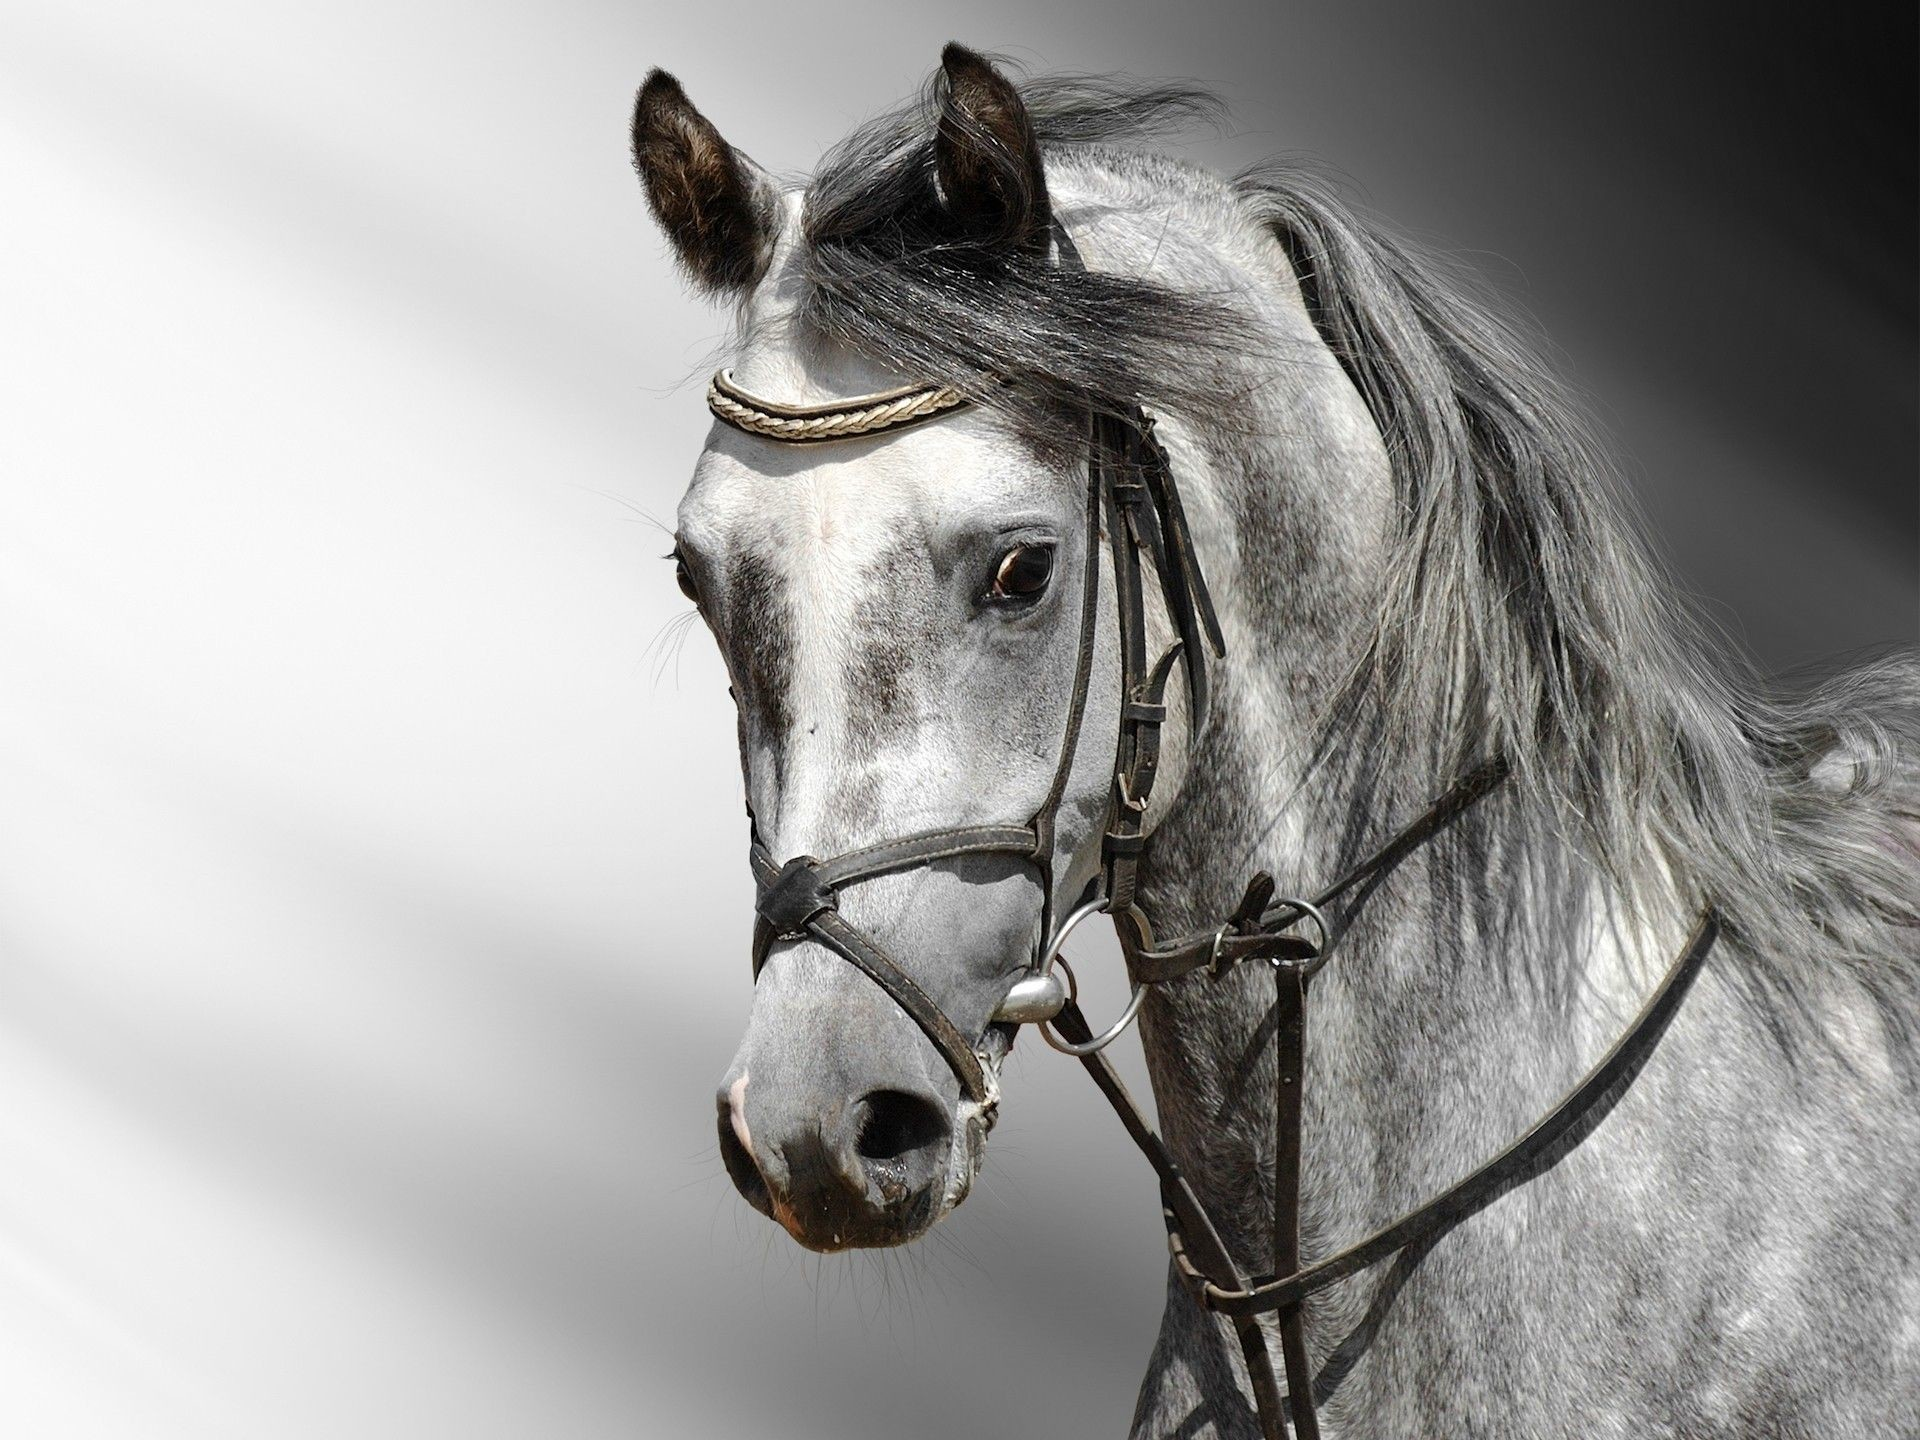 1920x1440 Horse Wallpapers HD Android Apps on Google Play 1920×1440 Images Of Horse  Wallpapers (